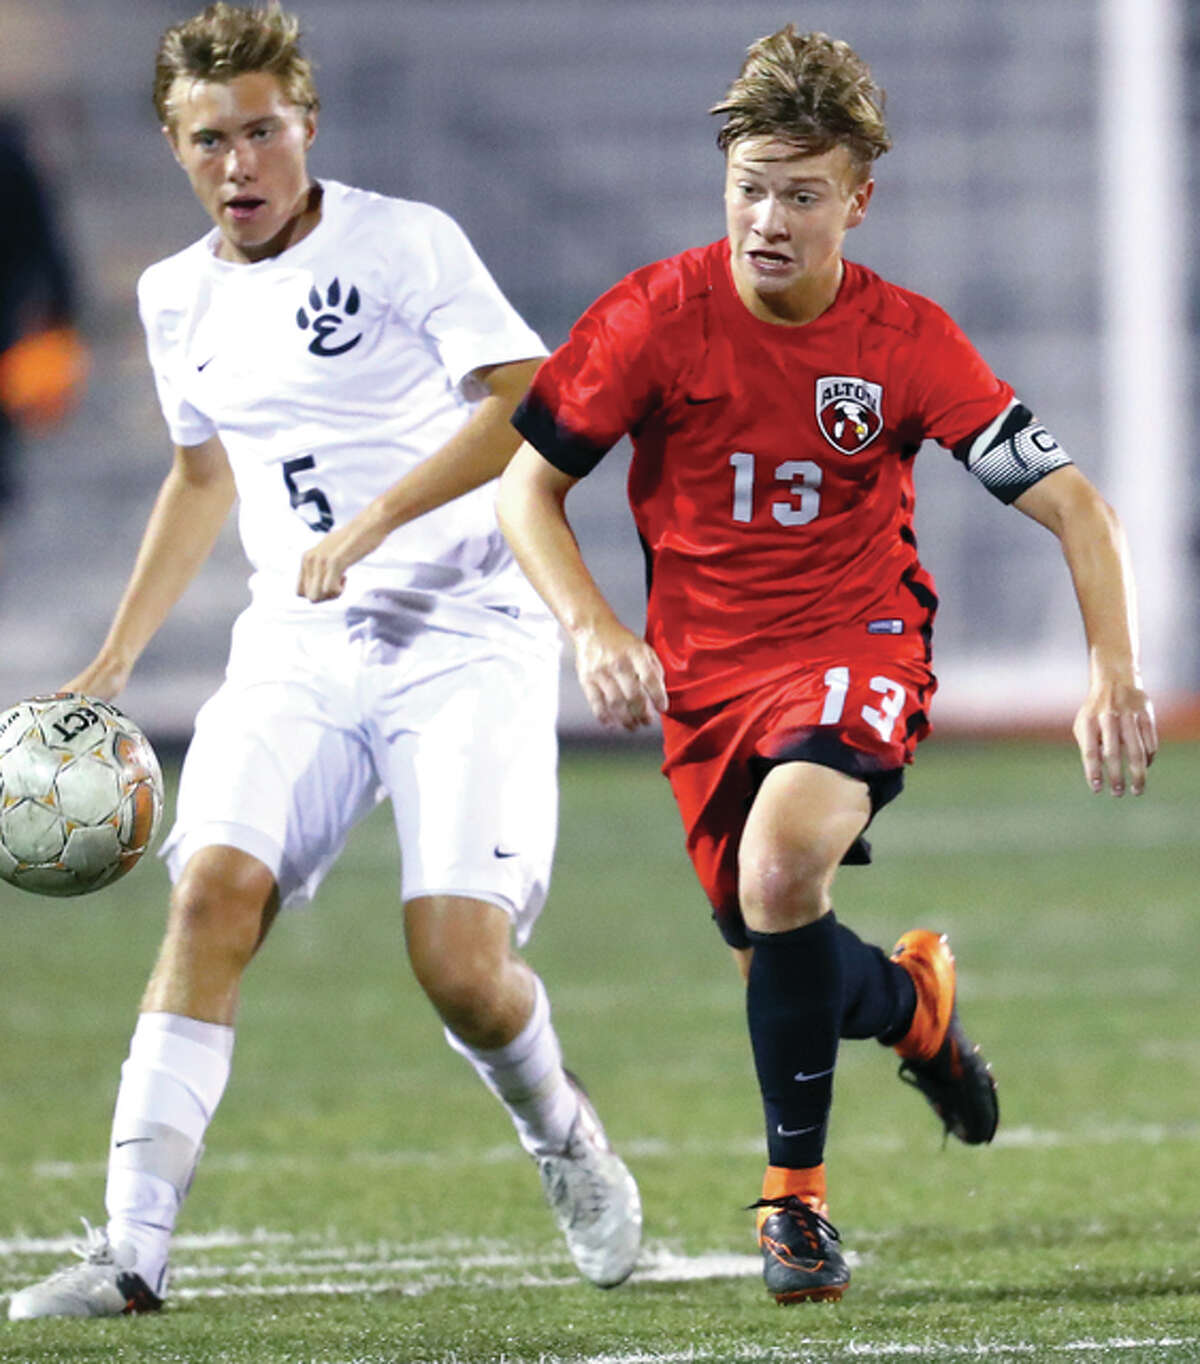 Alton's Skylar Funk (3) scored the only goal of the game in Saturday's 1-0 victyory over Wterloo Gibault at Alton. Funk is shown in action last week against Edwardsville's Jacob Mulvihill.